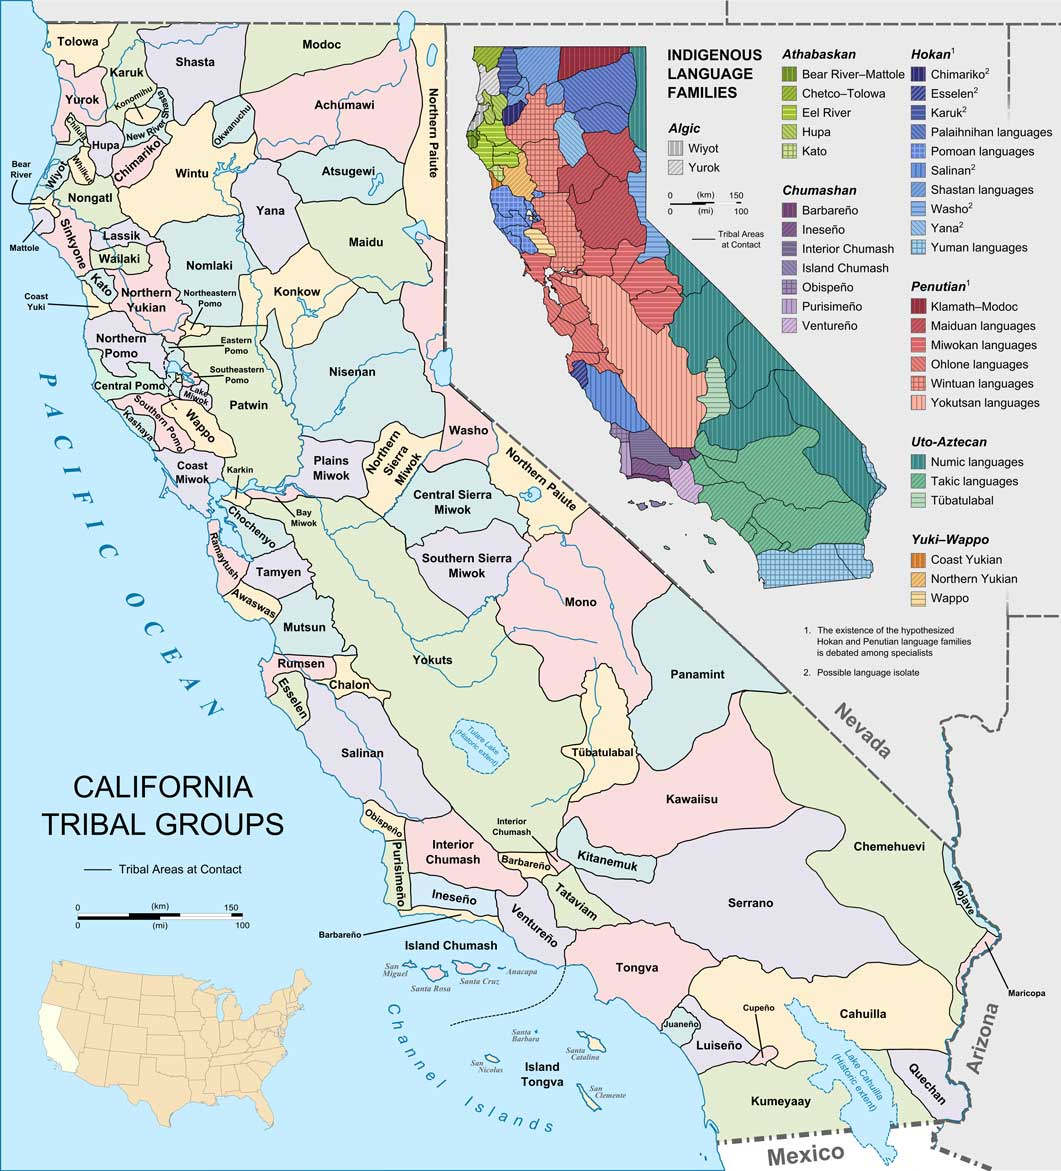 California tribes & languages at contact.png